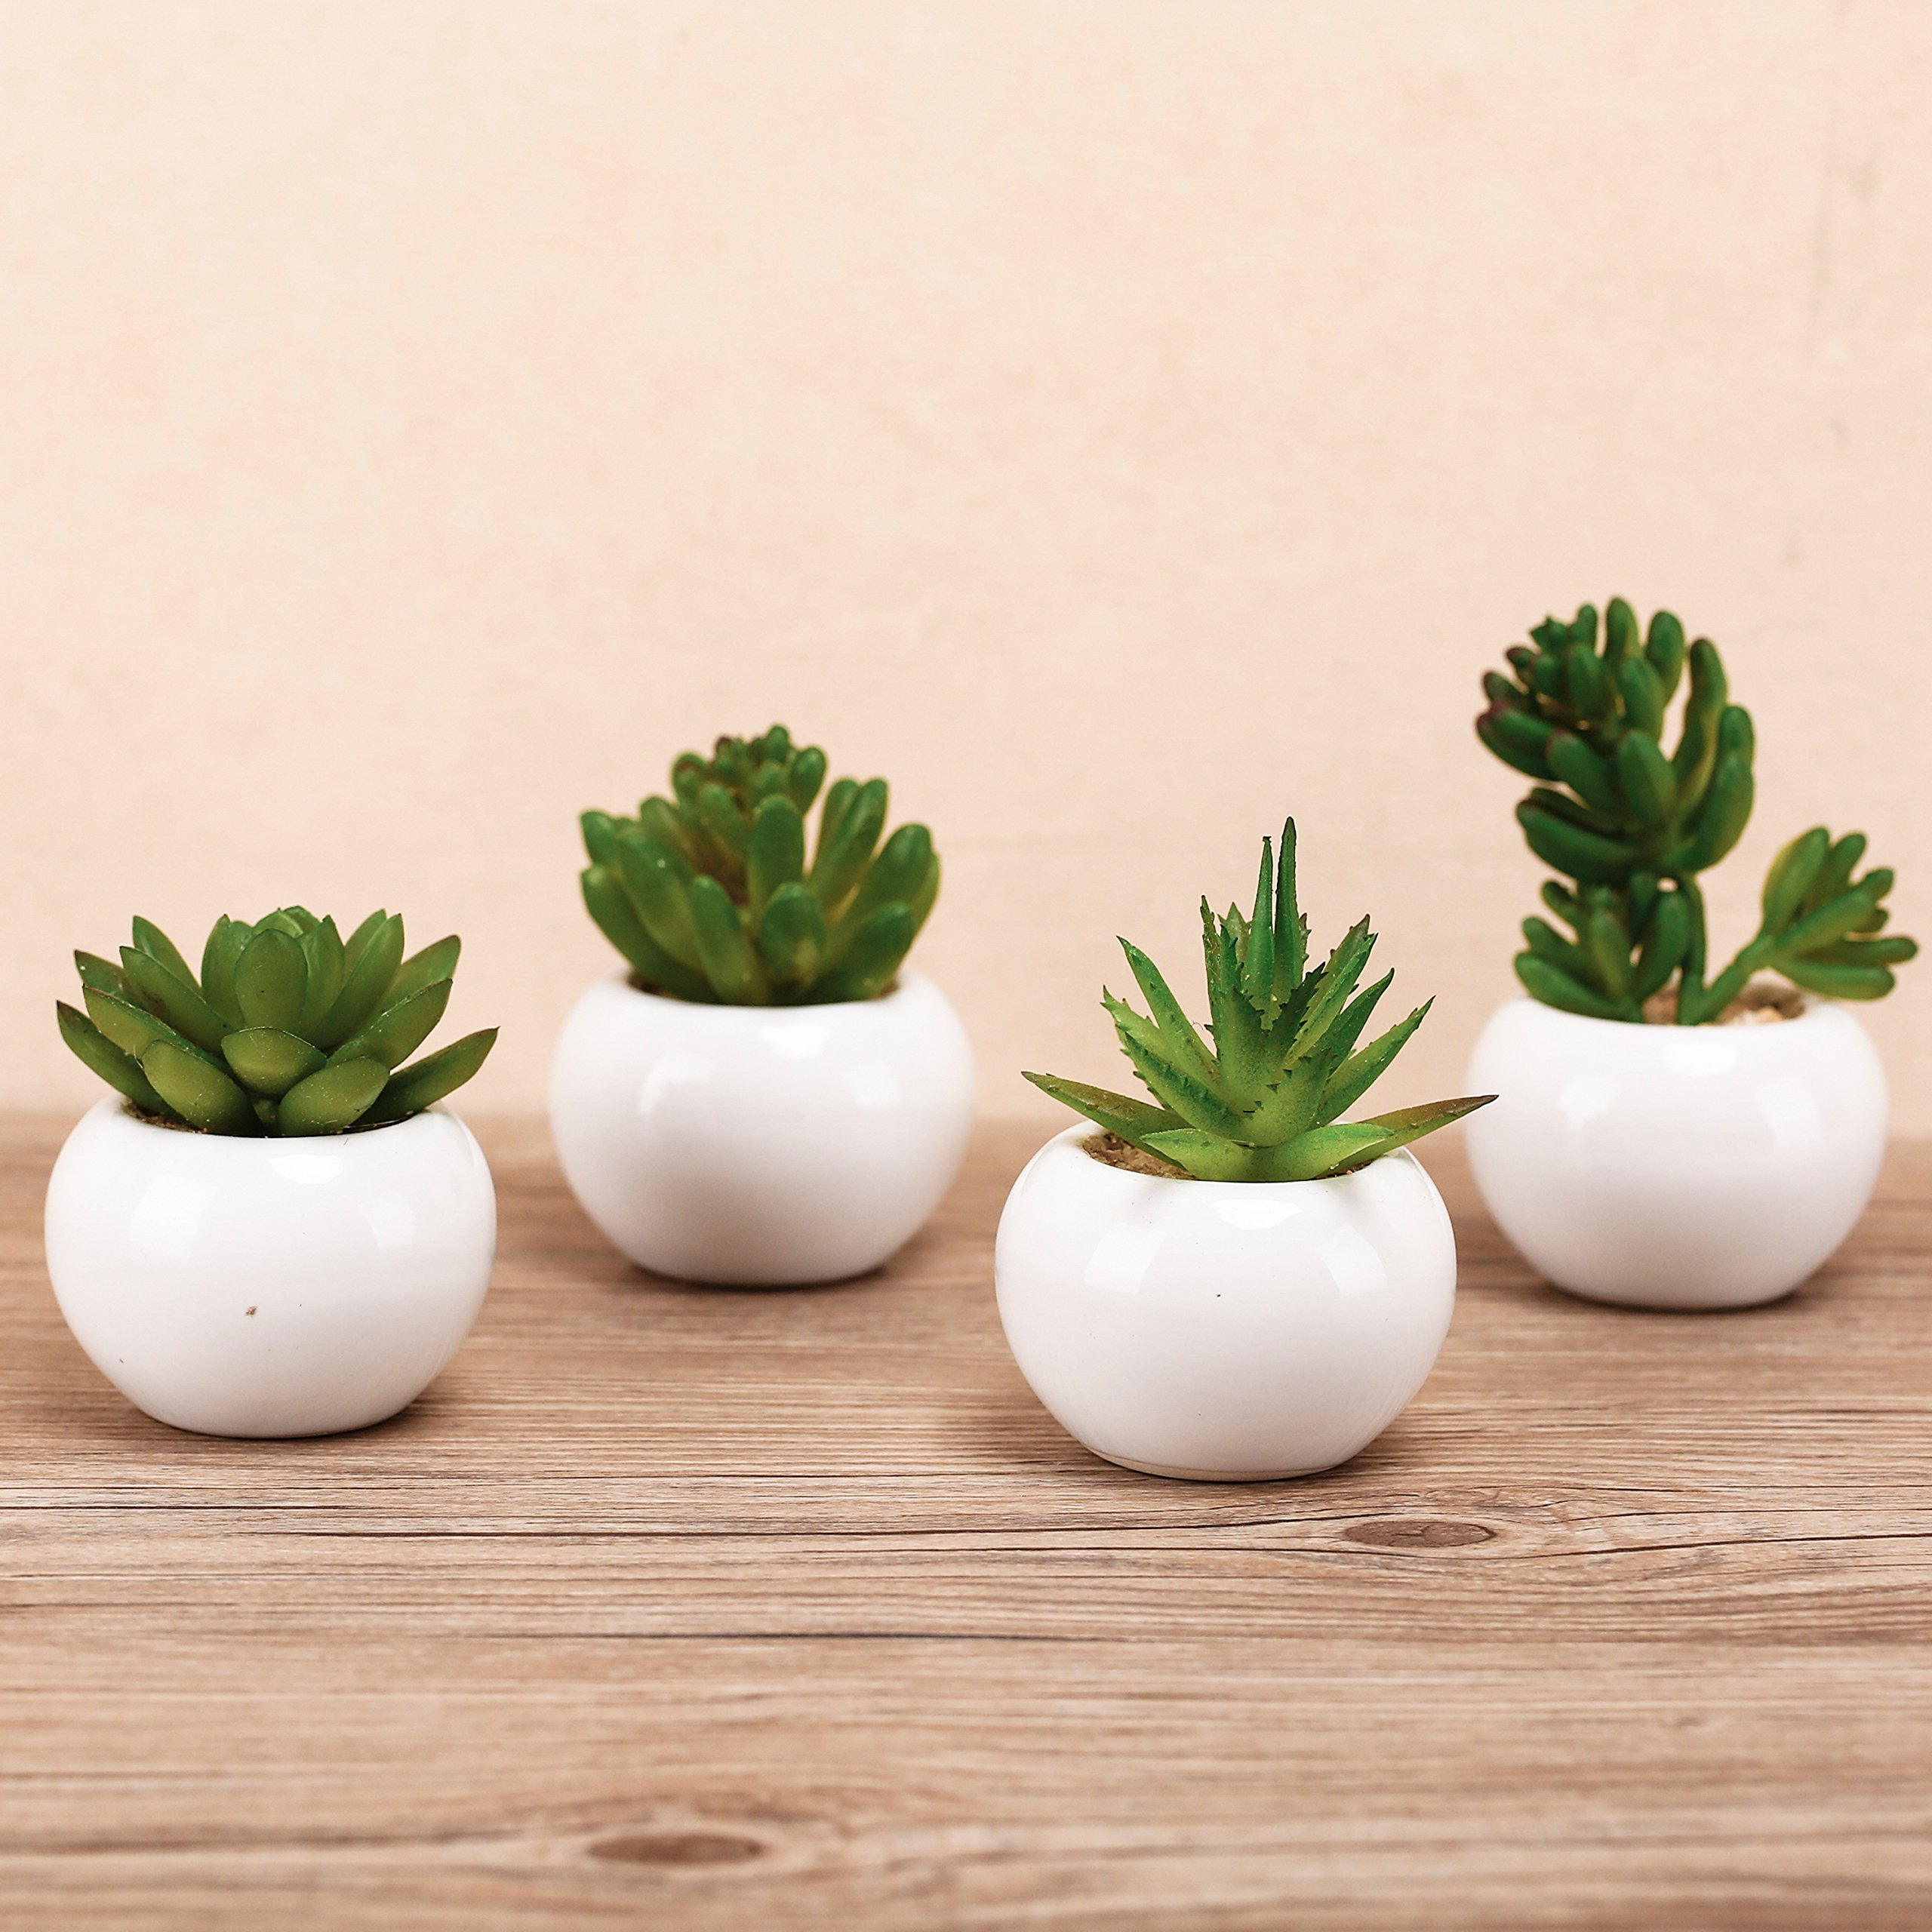 3-inch Mixed Green Artificial Succulent Plants in Round Glazed White Ceramic Pots, Set of 4 by MyGift (Image #2)